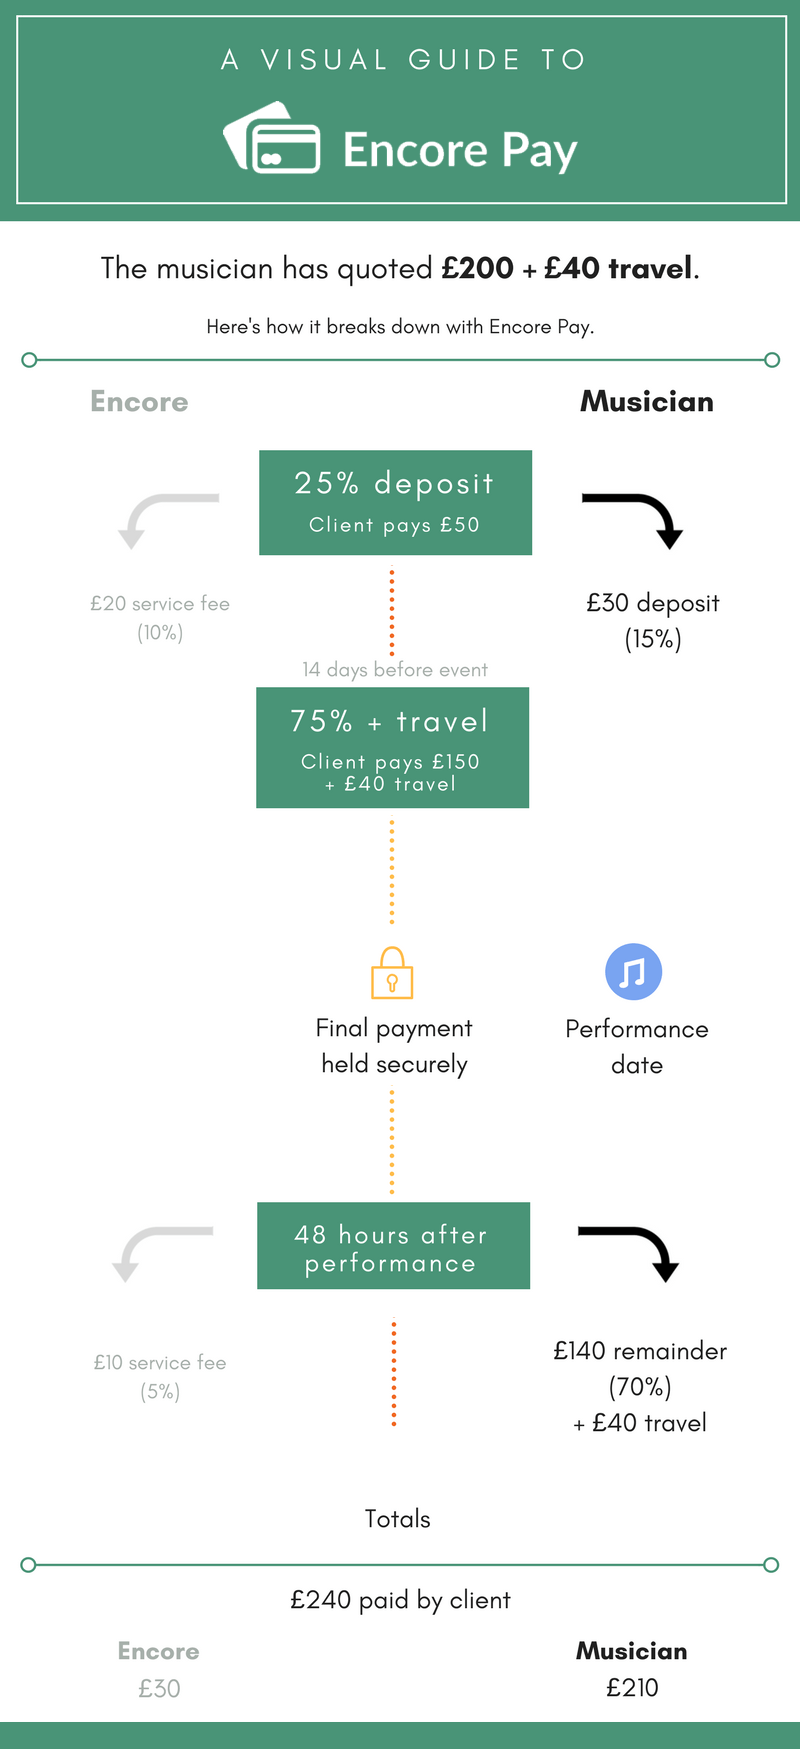 Visual guide to Encore Pay - Infographic